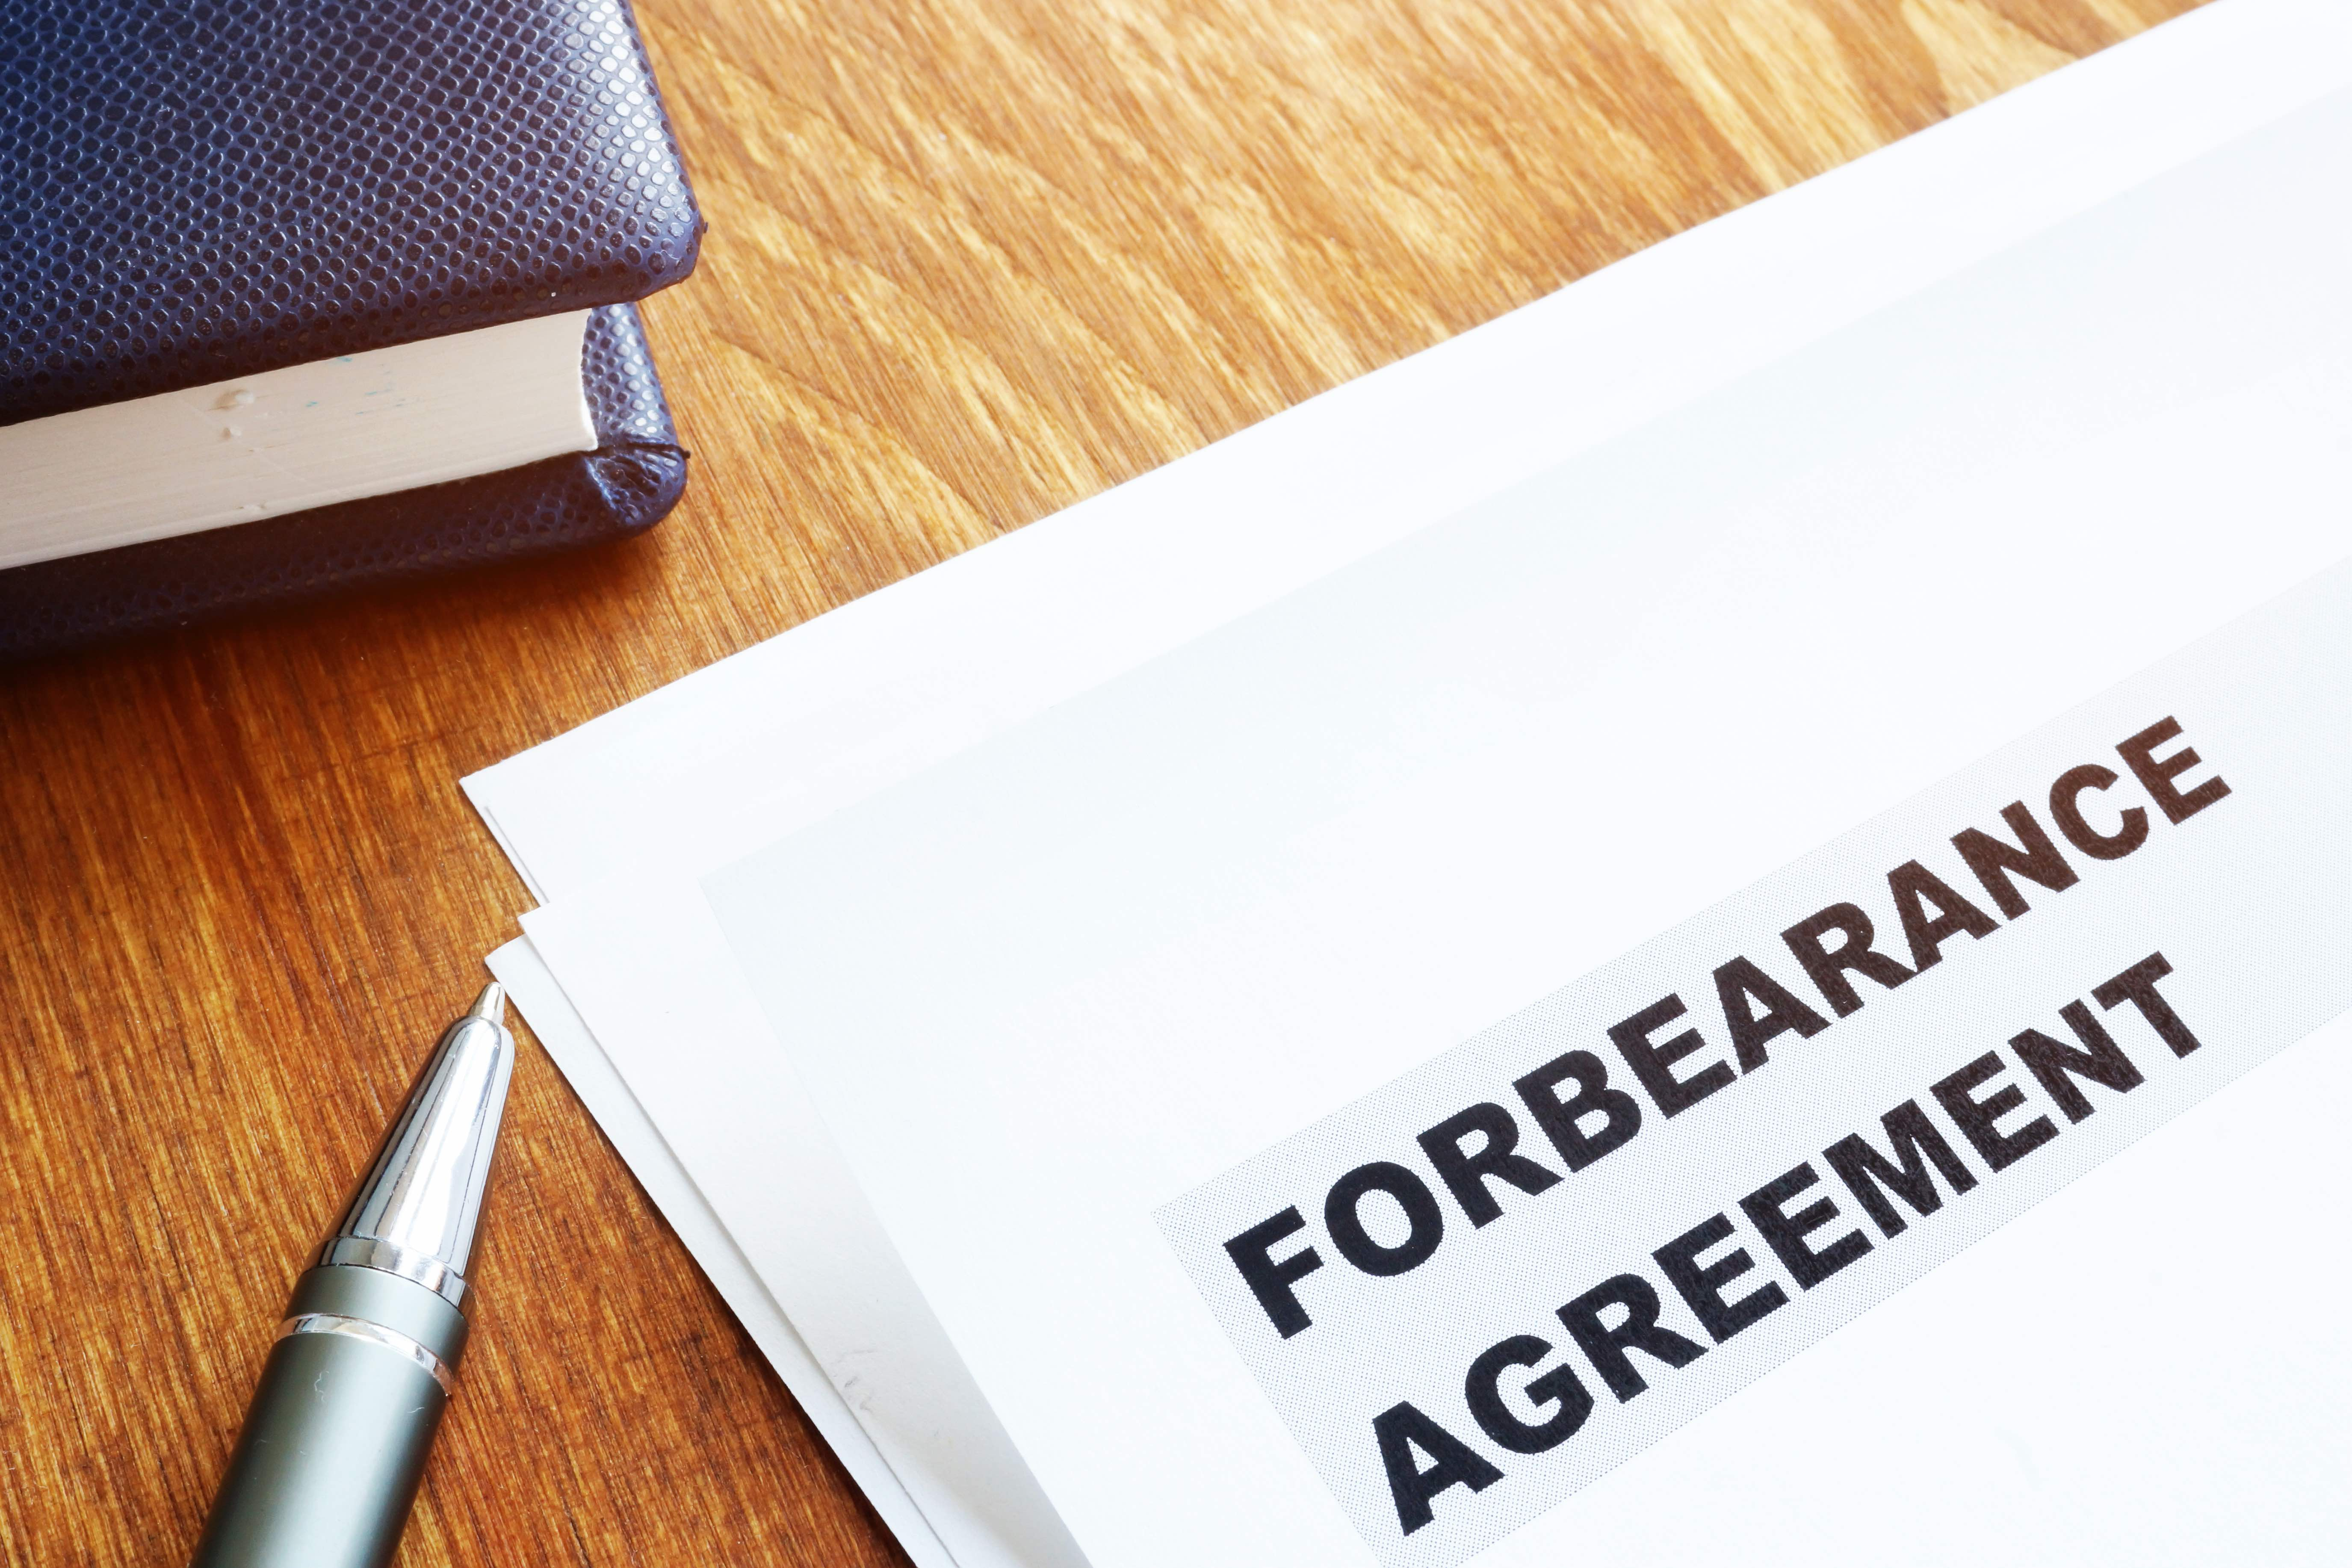 Forbearance Repayment Options Announced